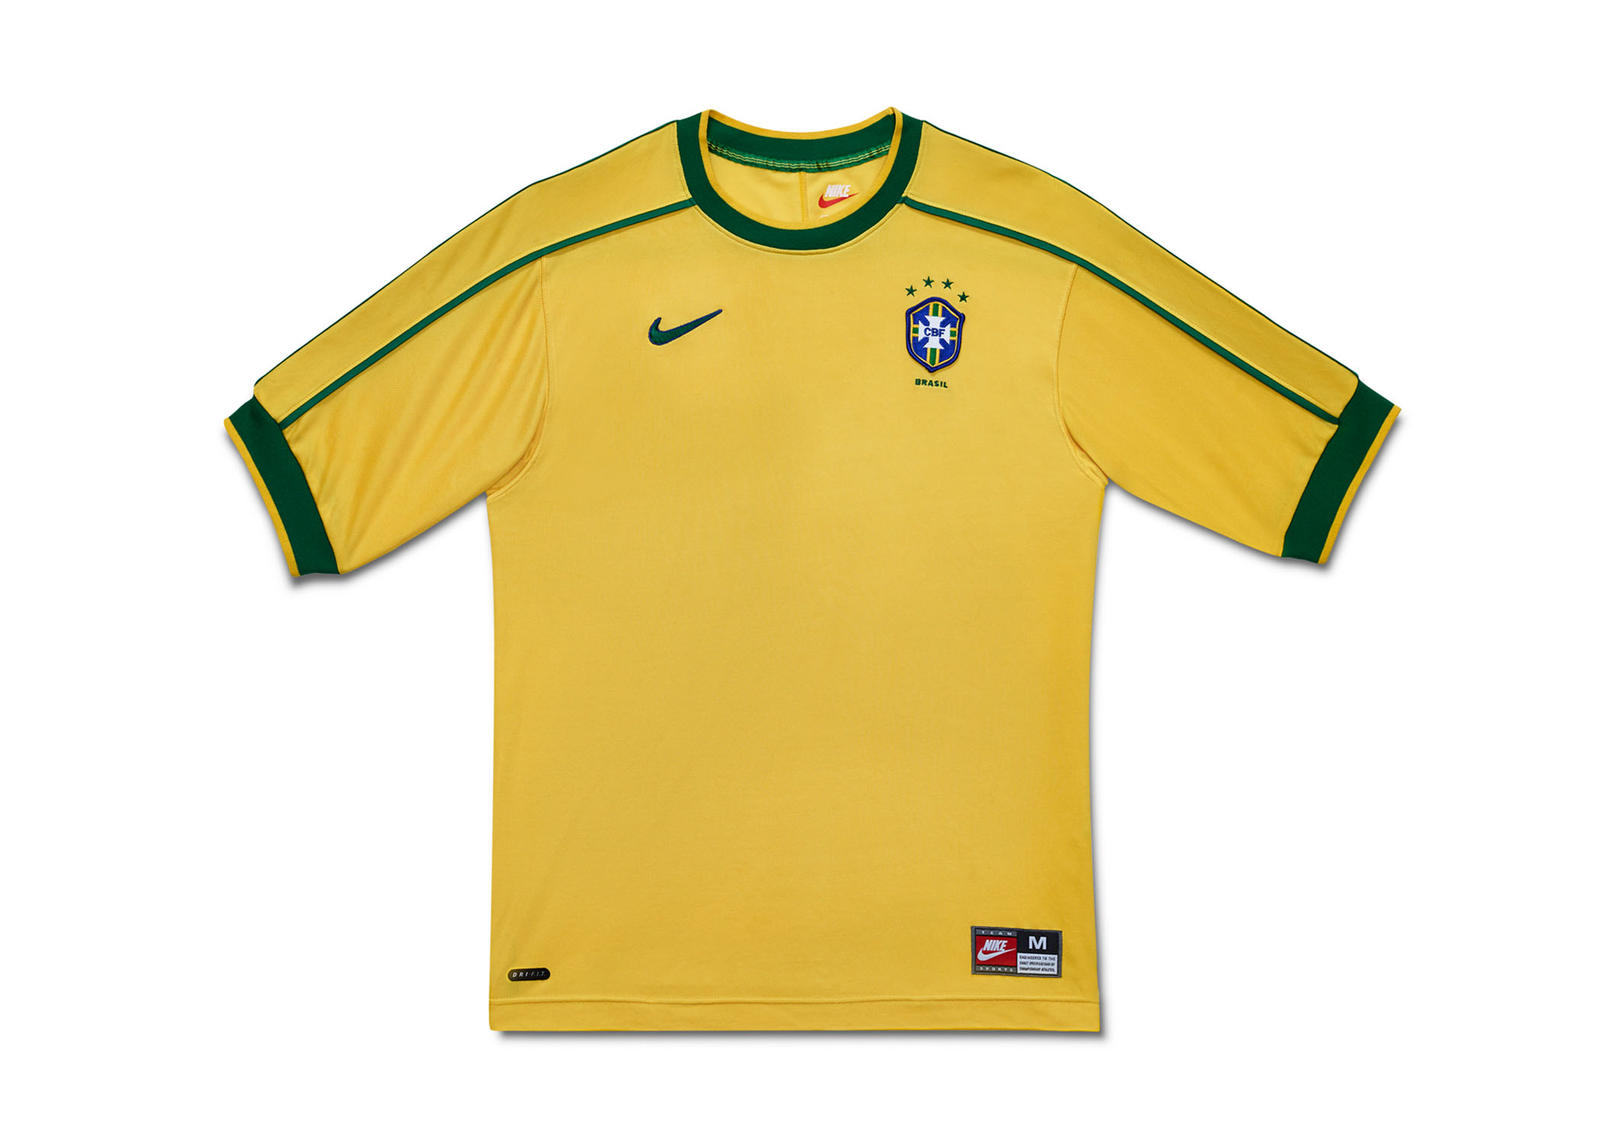 7a3e9466003 A Retrospective of Brasil s Yellow Jersey - Nike News